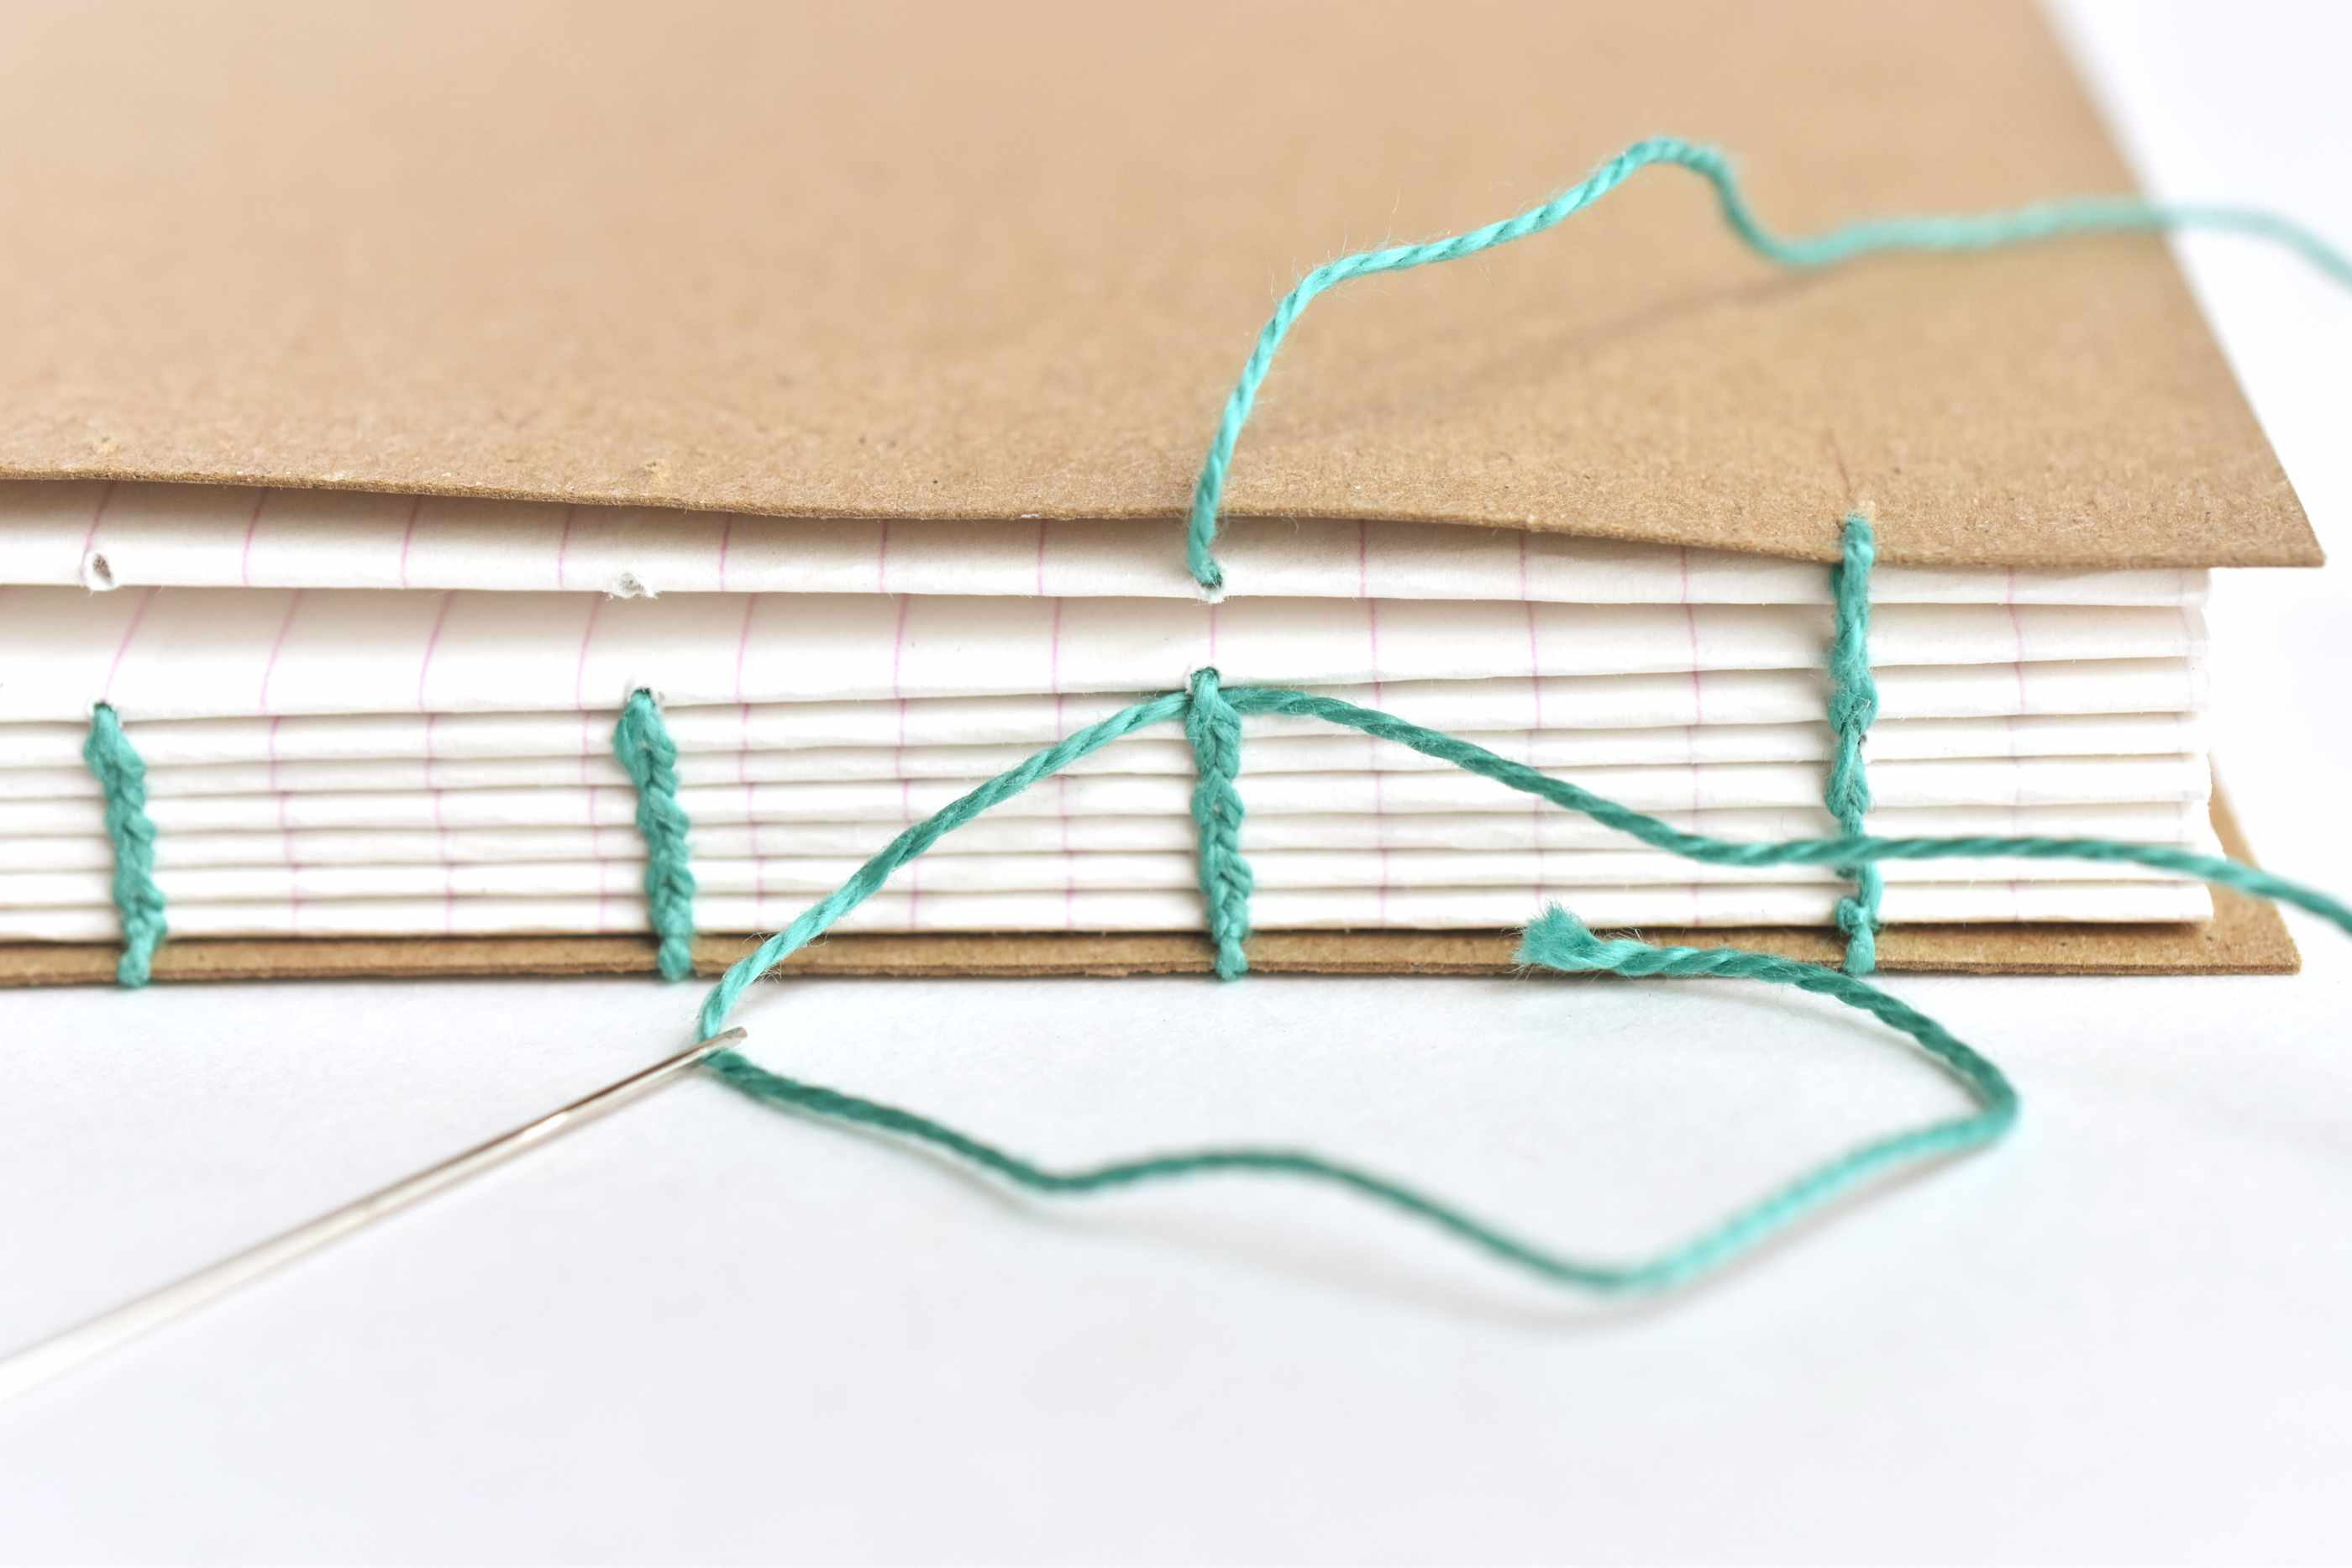 Come Out From the Signature and Through the Previous Stitch